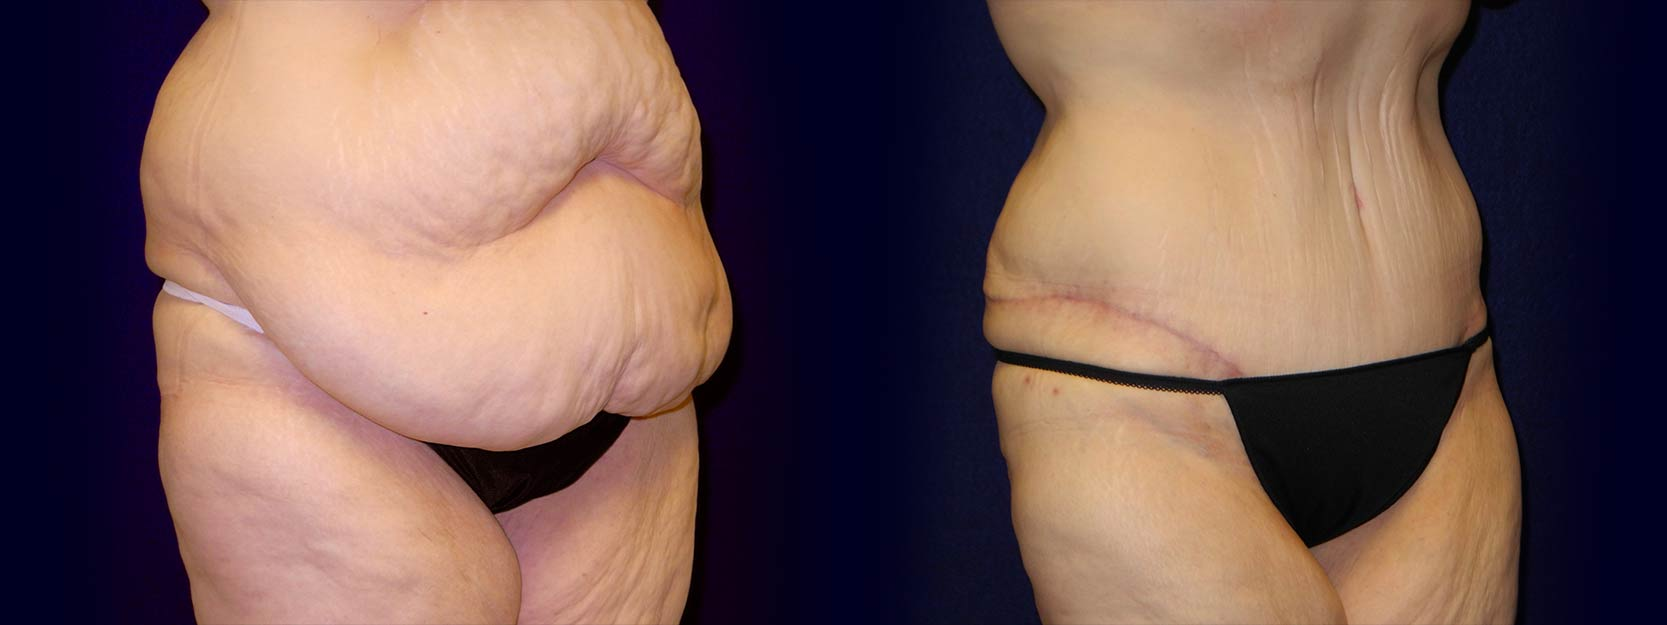 Right 3/4 View - Tummy Tuck After Weight Loss